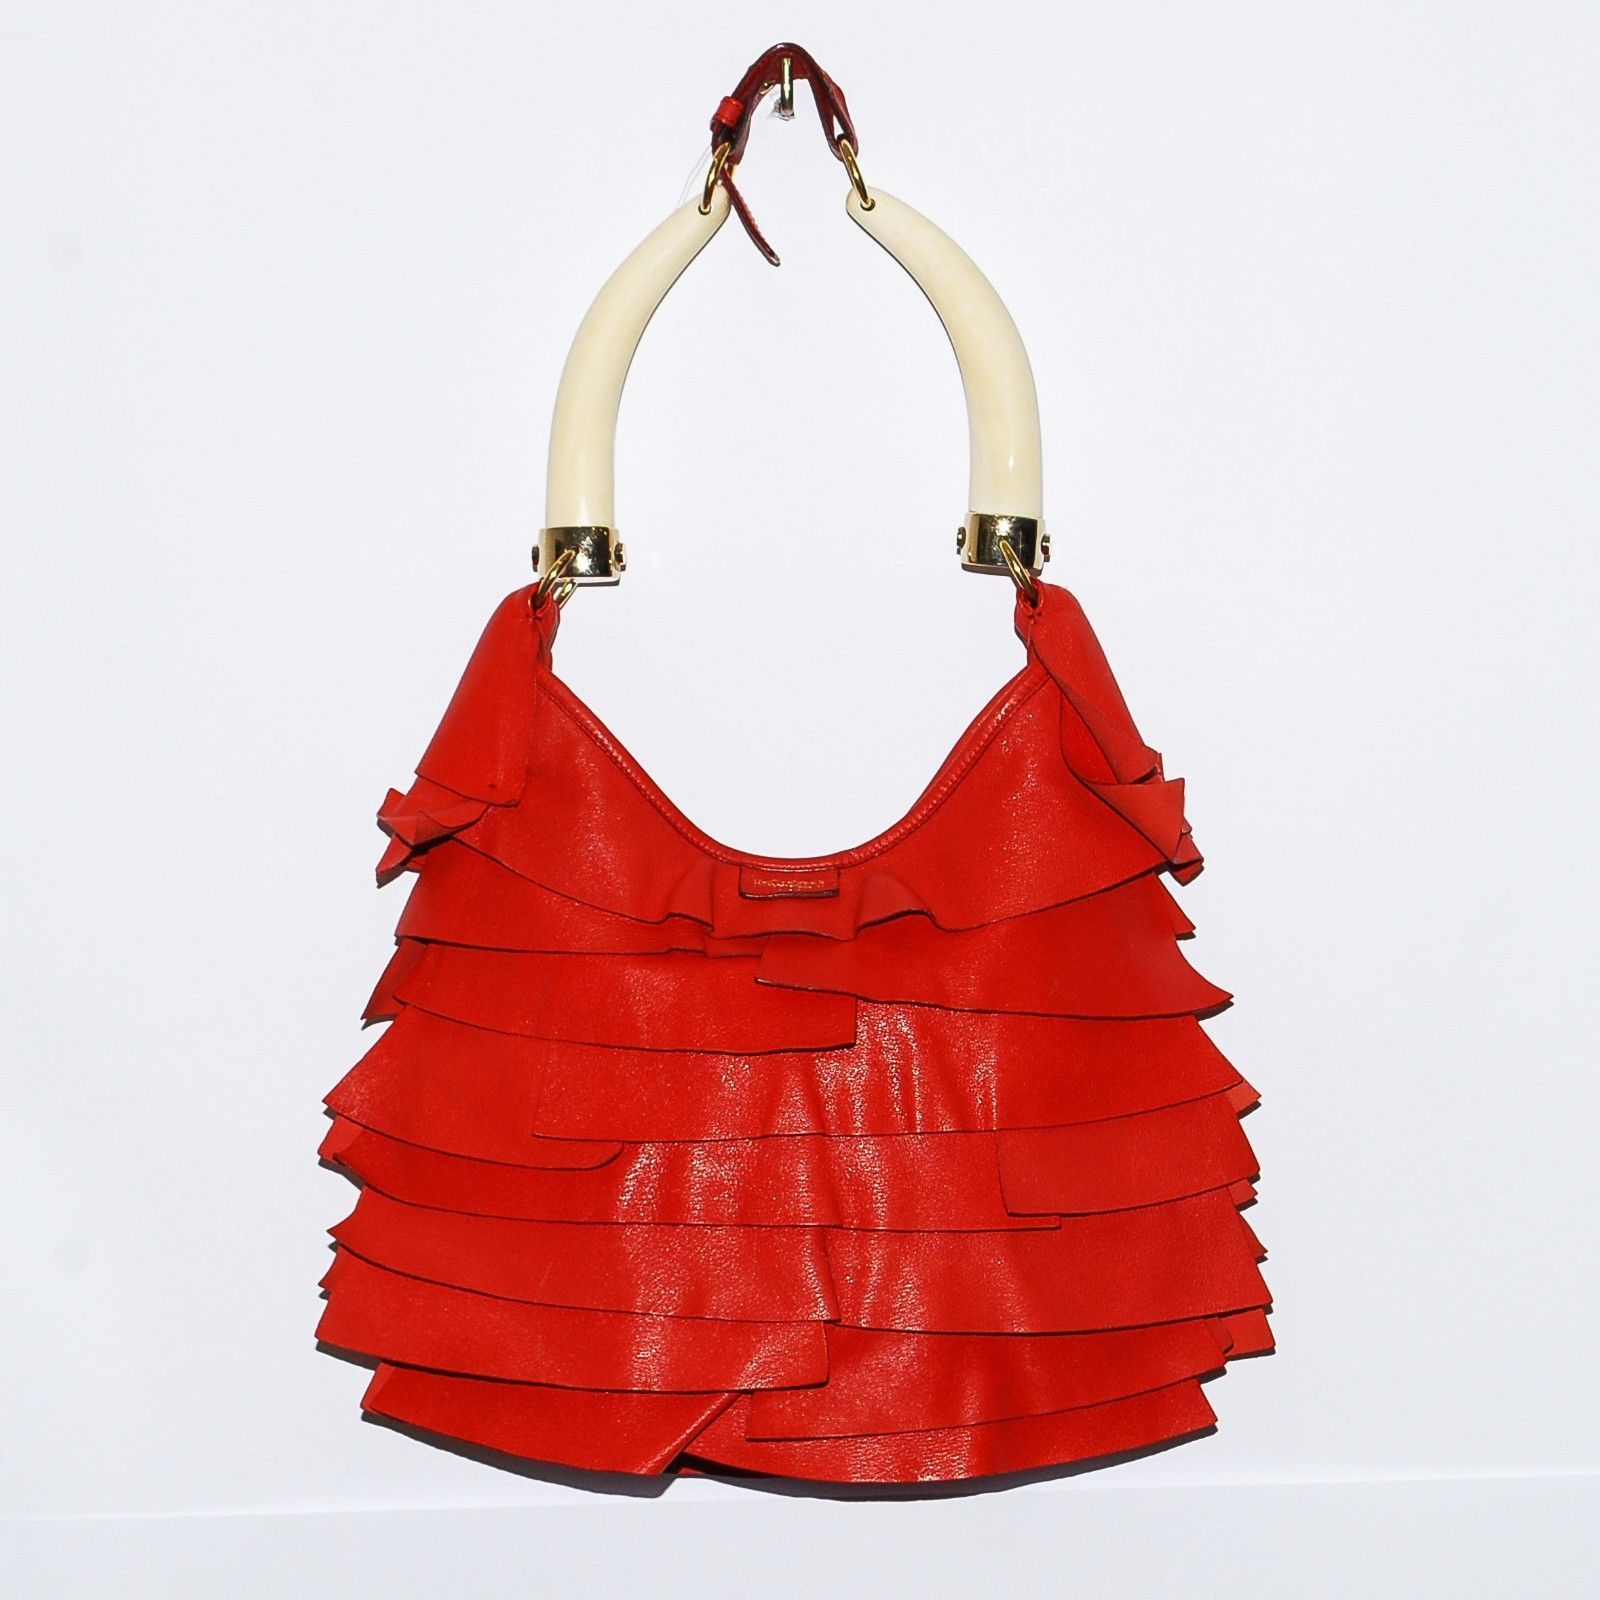 c39cef35ab Yves Saint Laurent Ysl Chevre Leather Red and 15 similar items. S l1600